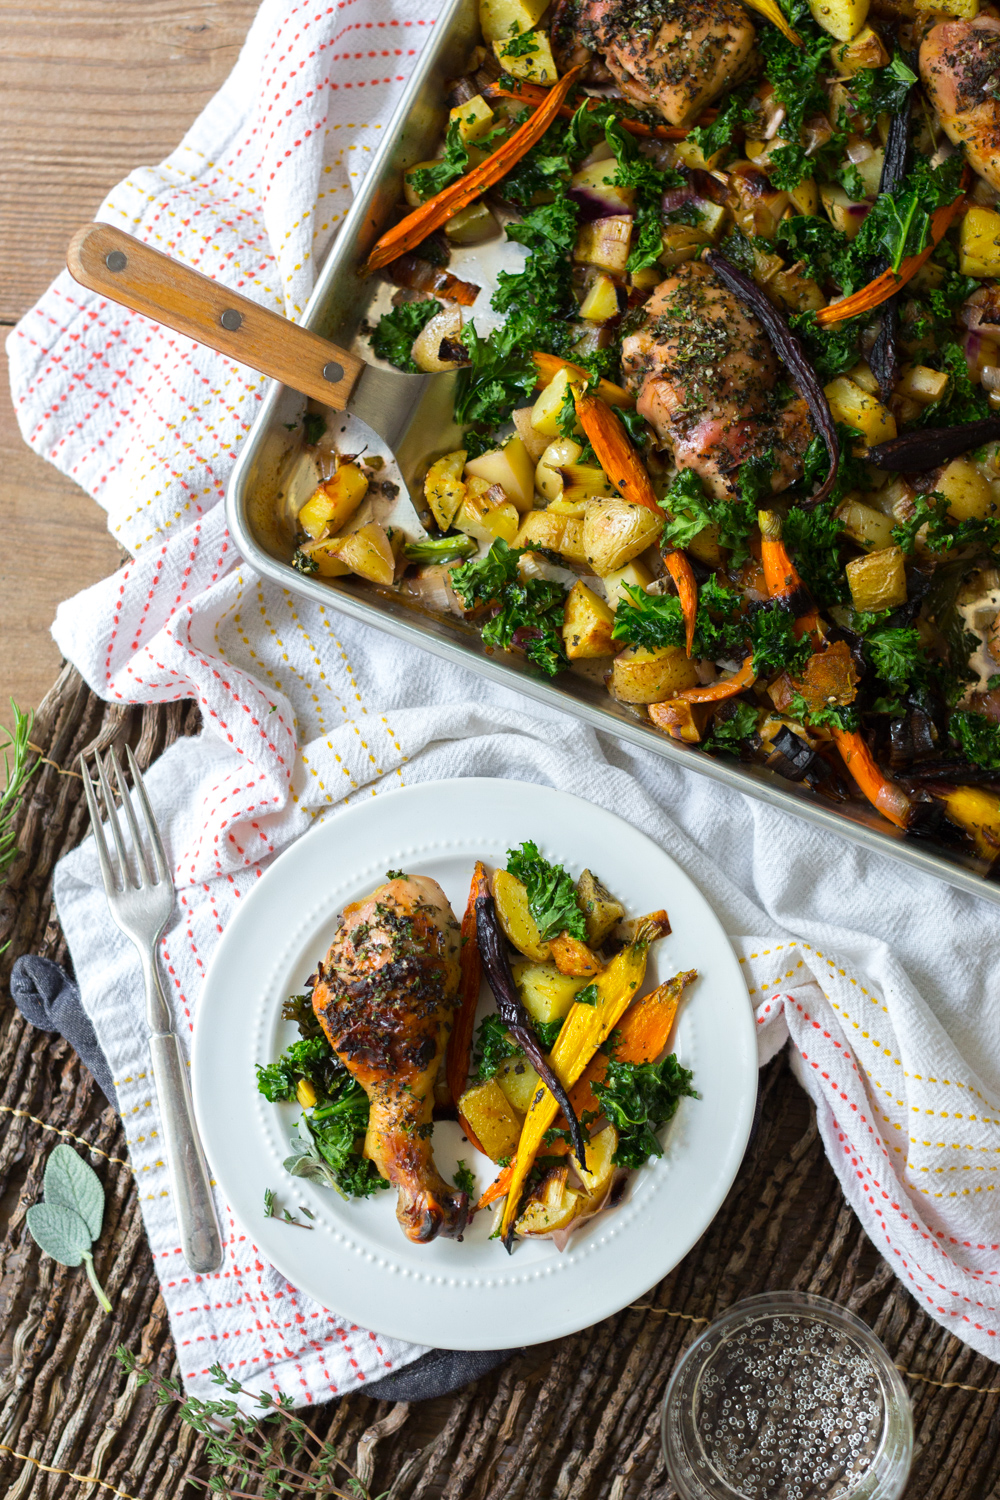 Apple Cider Brined Chicken with Roasted Veggies & Herbs plate.